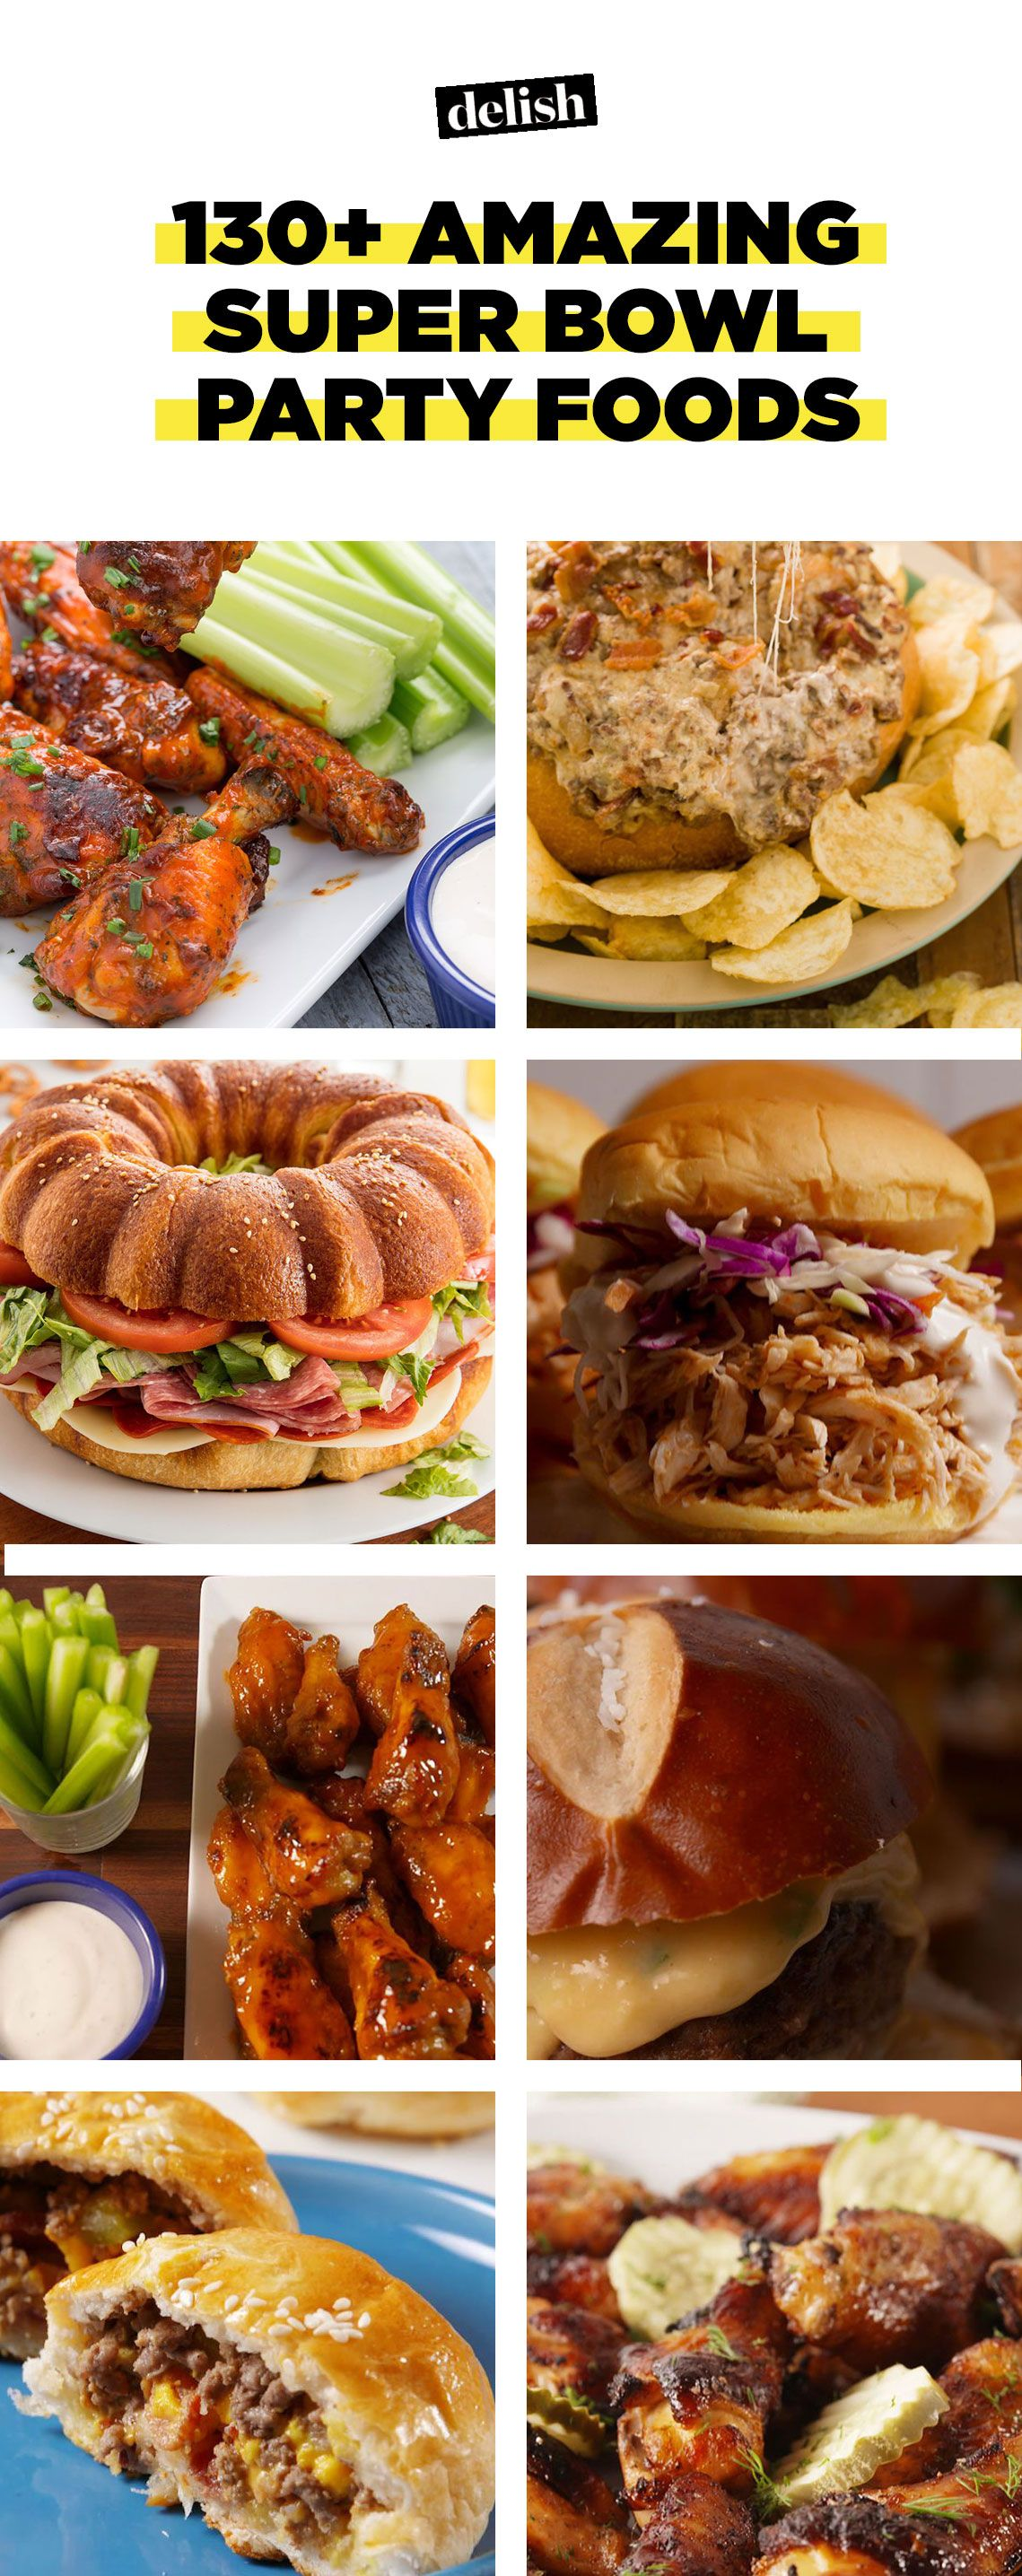 pictures 11 Super Bowl Party Ideas That Will Score Major Hostess Points